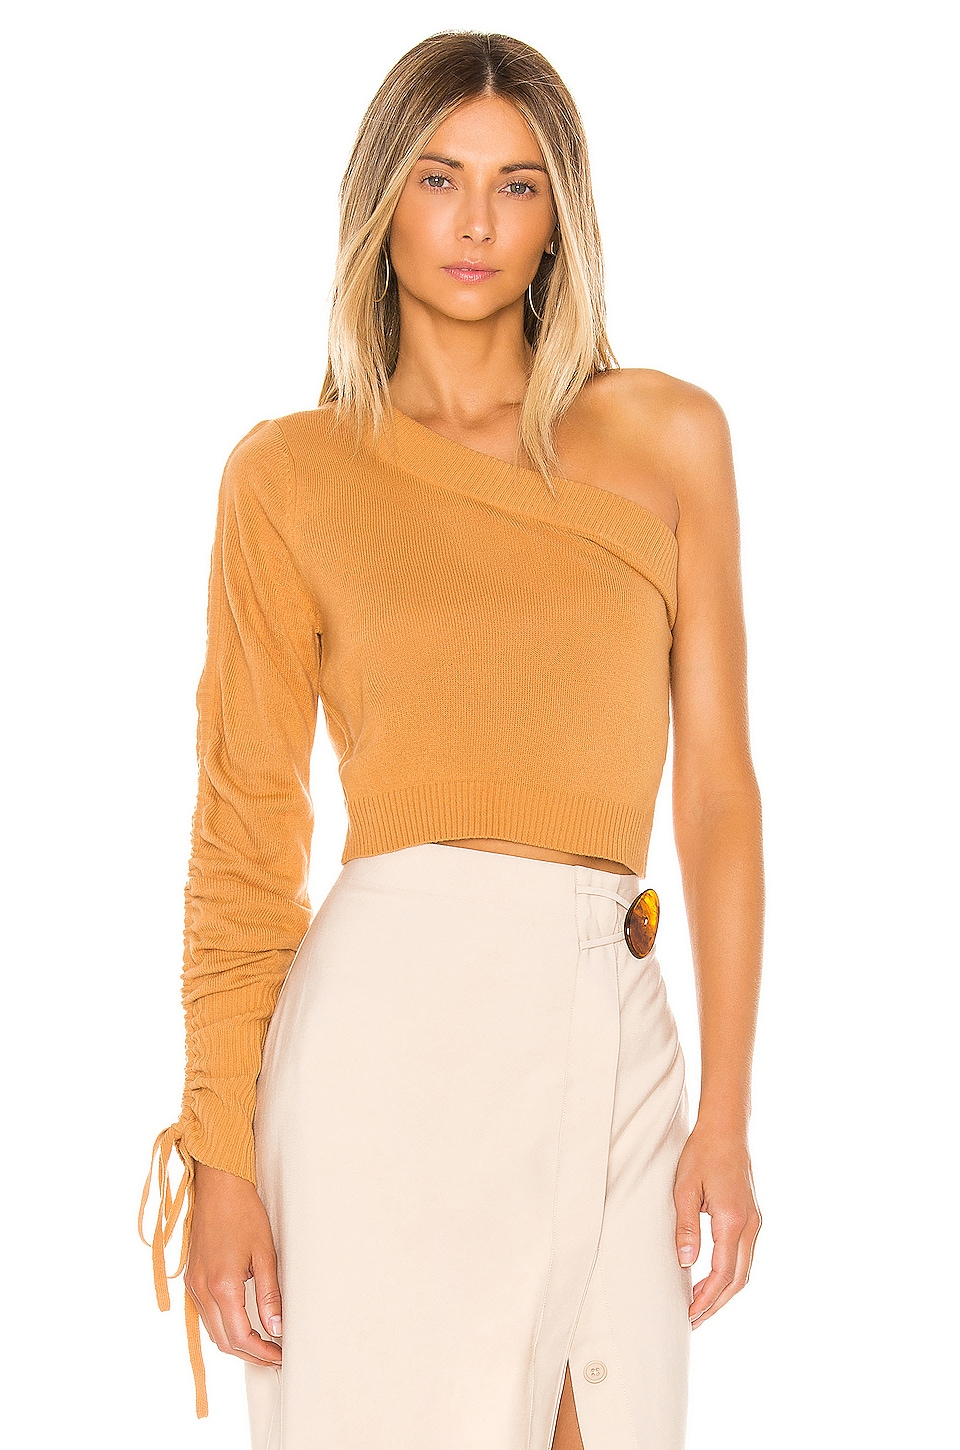 Lovers + Friends Linny Sweater in Tan